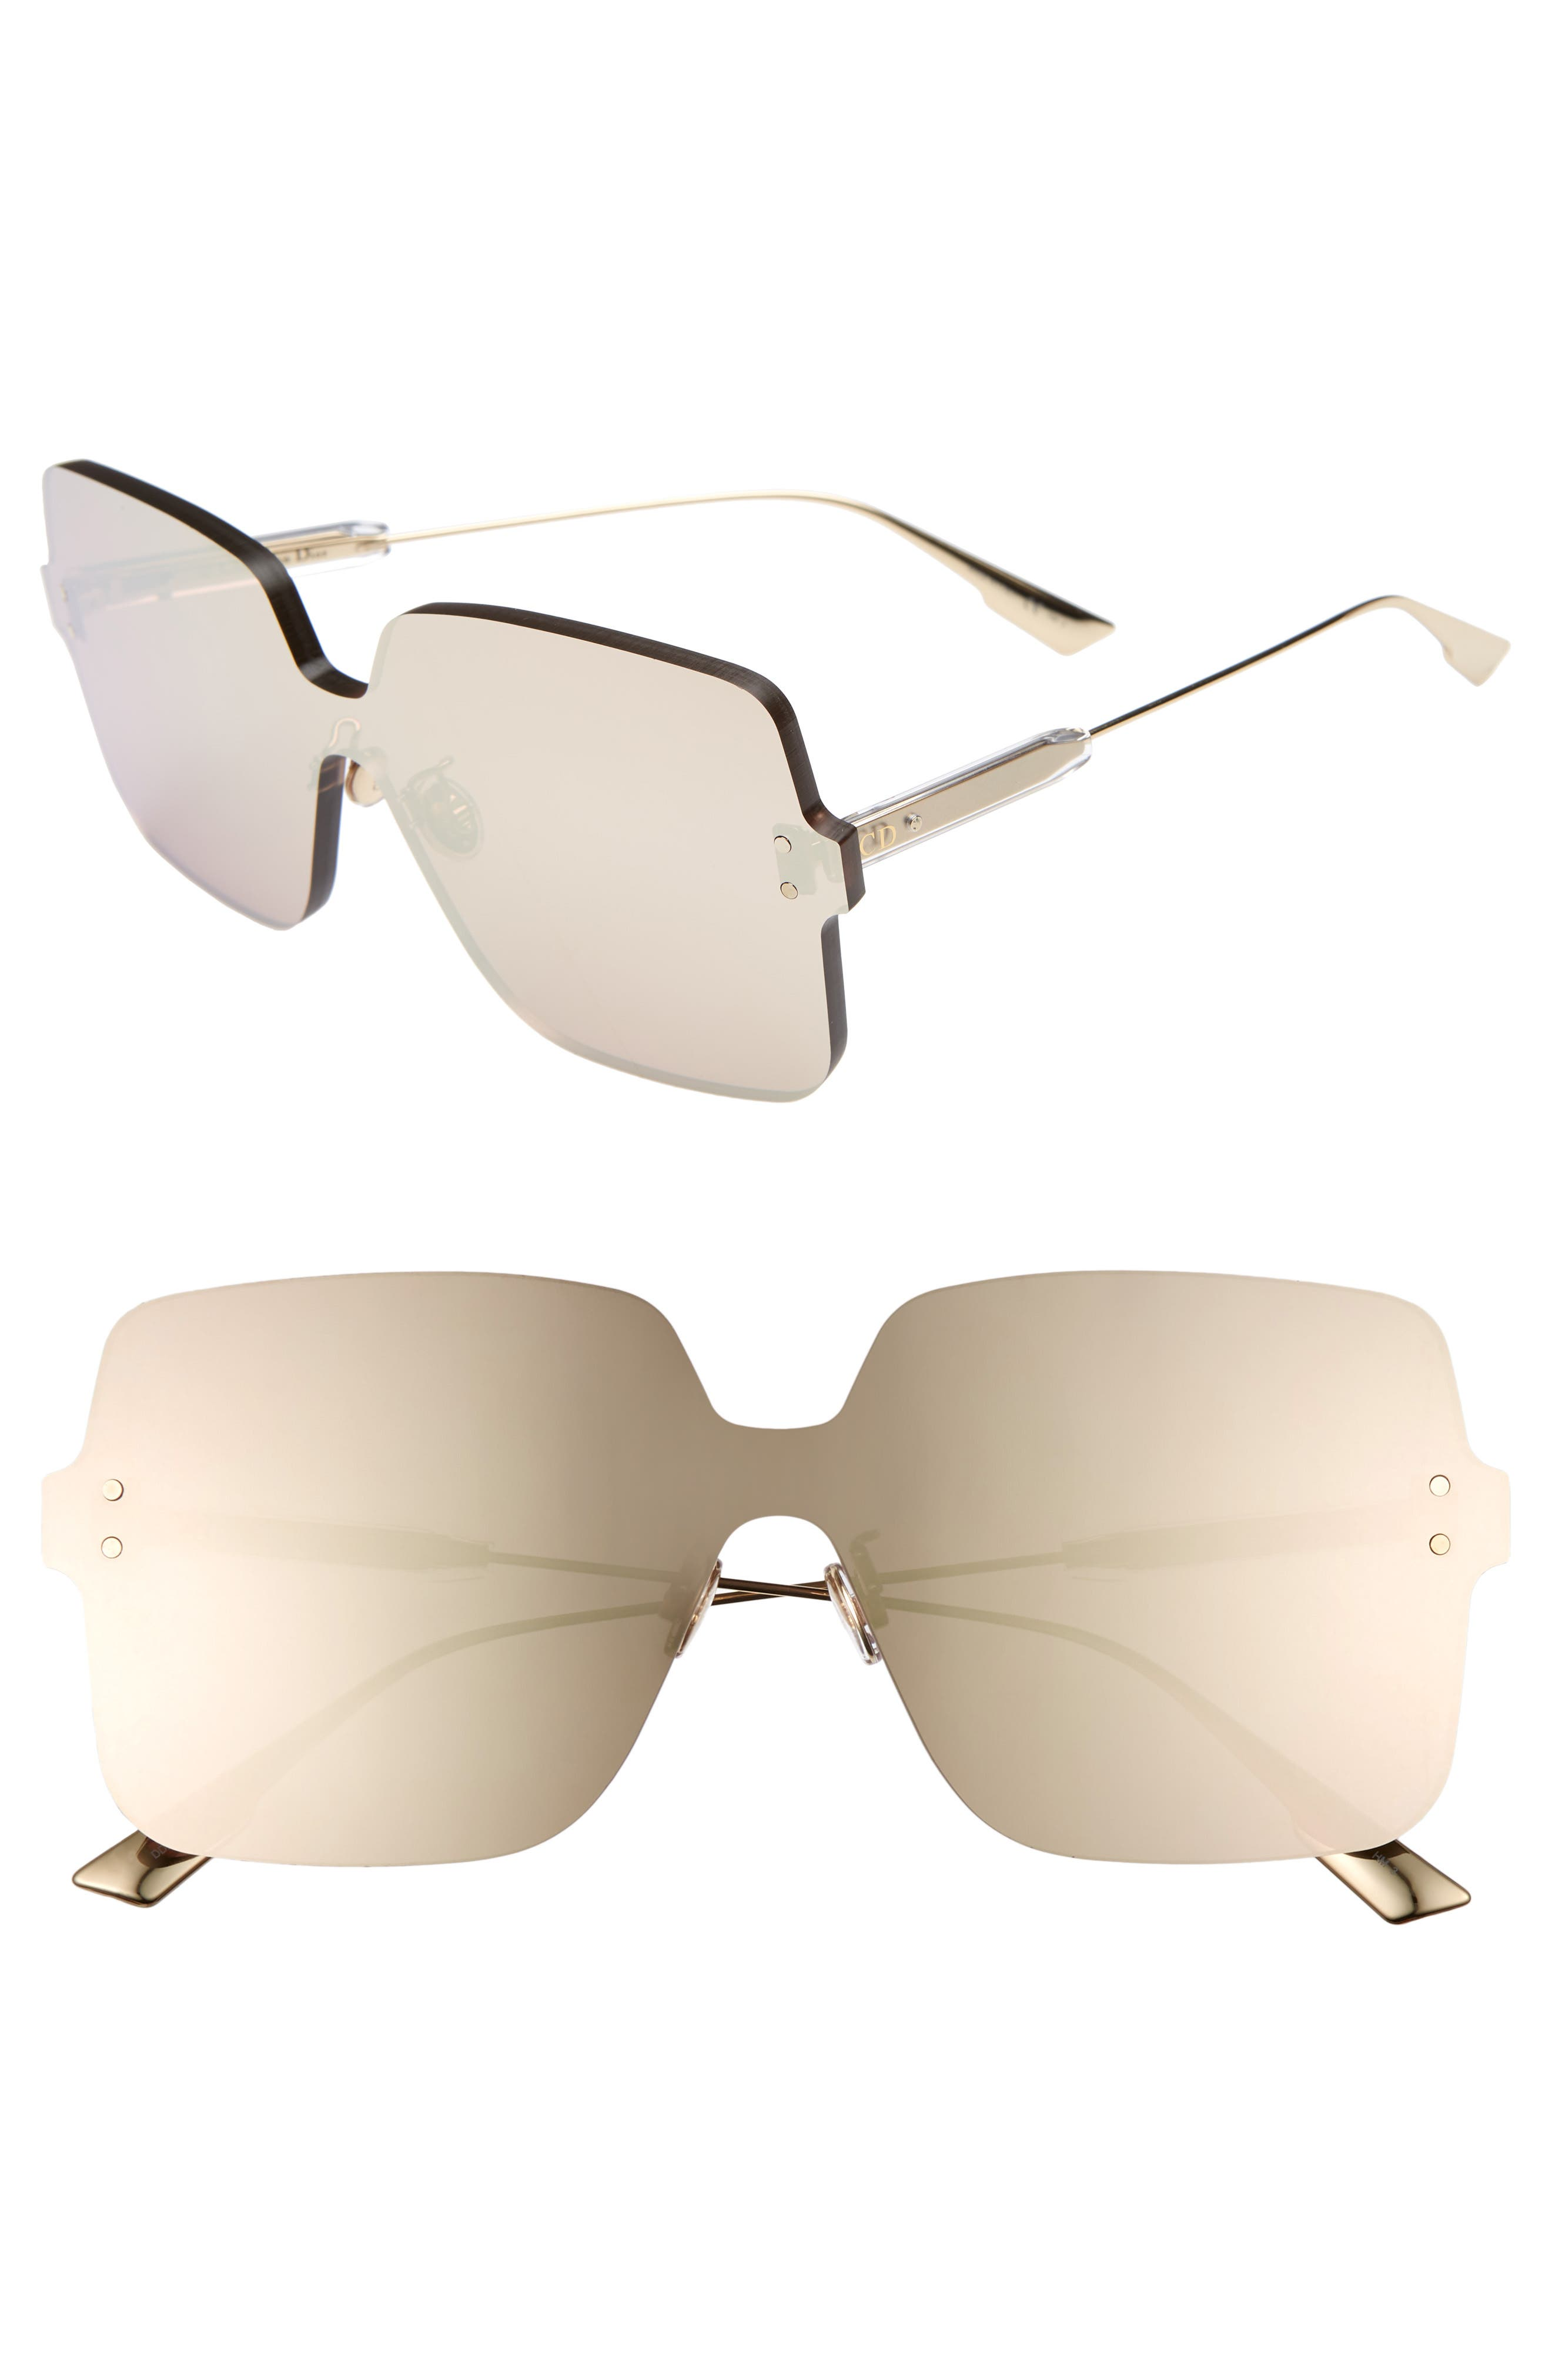 Christian Dior Quake1 147Mm Square Rimless Shield Sunglasses - Gold Copper